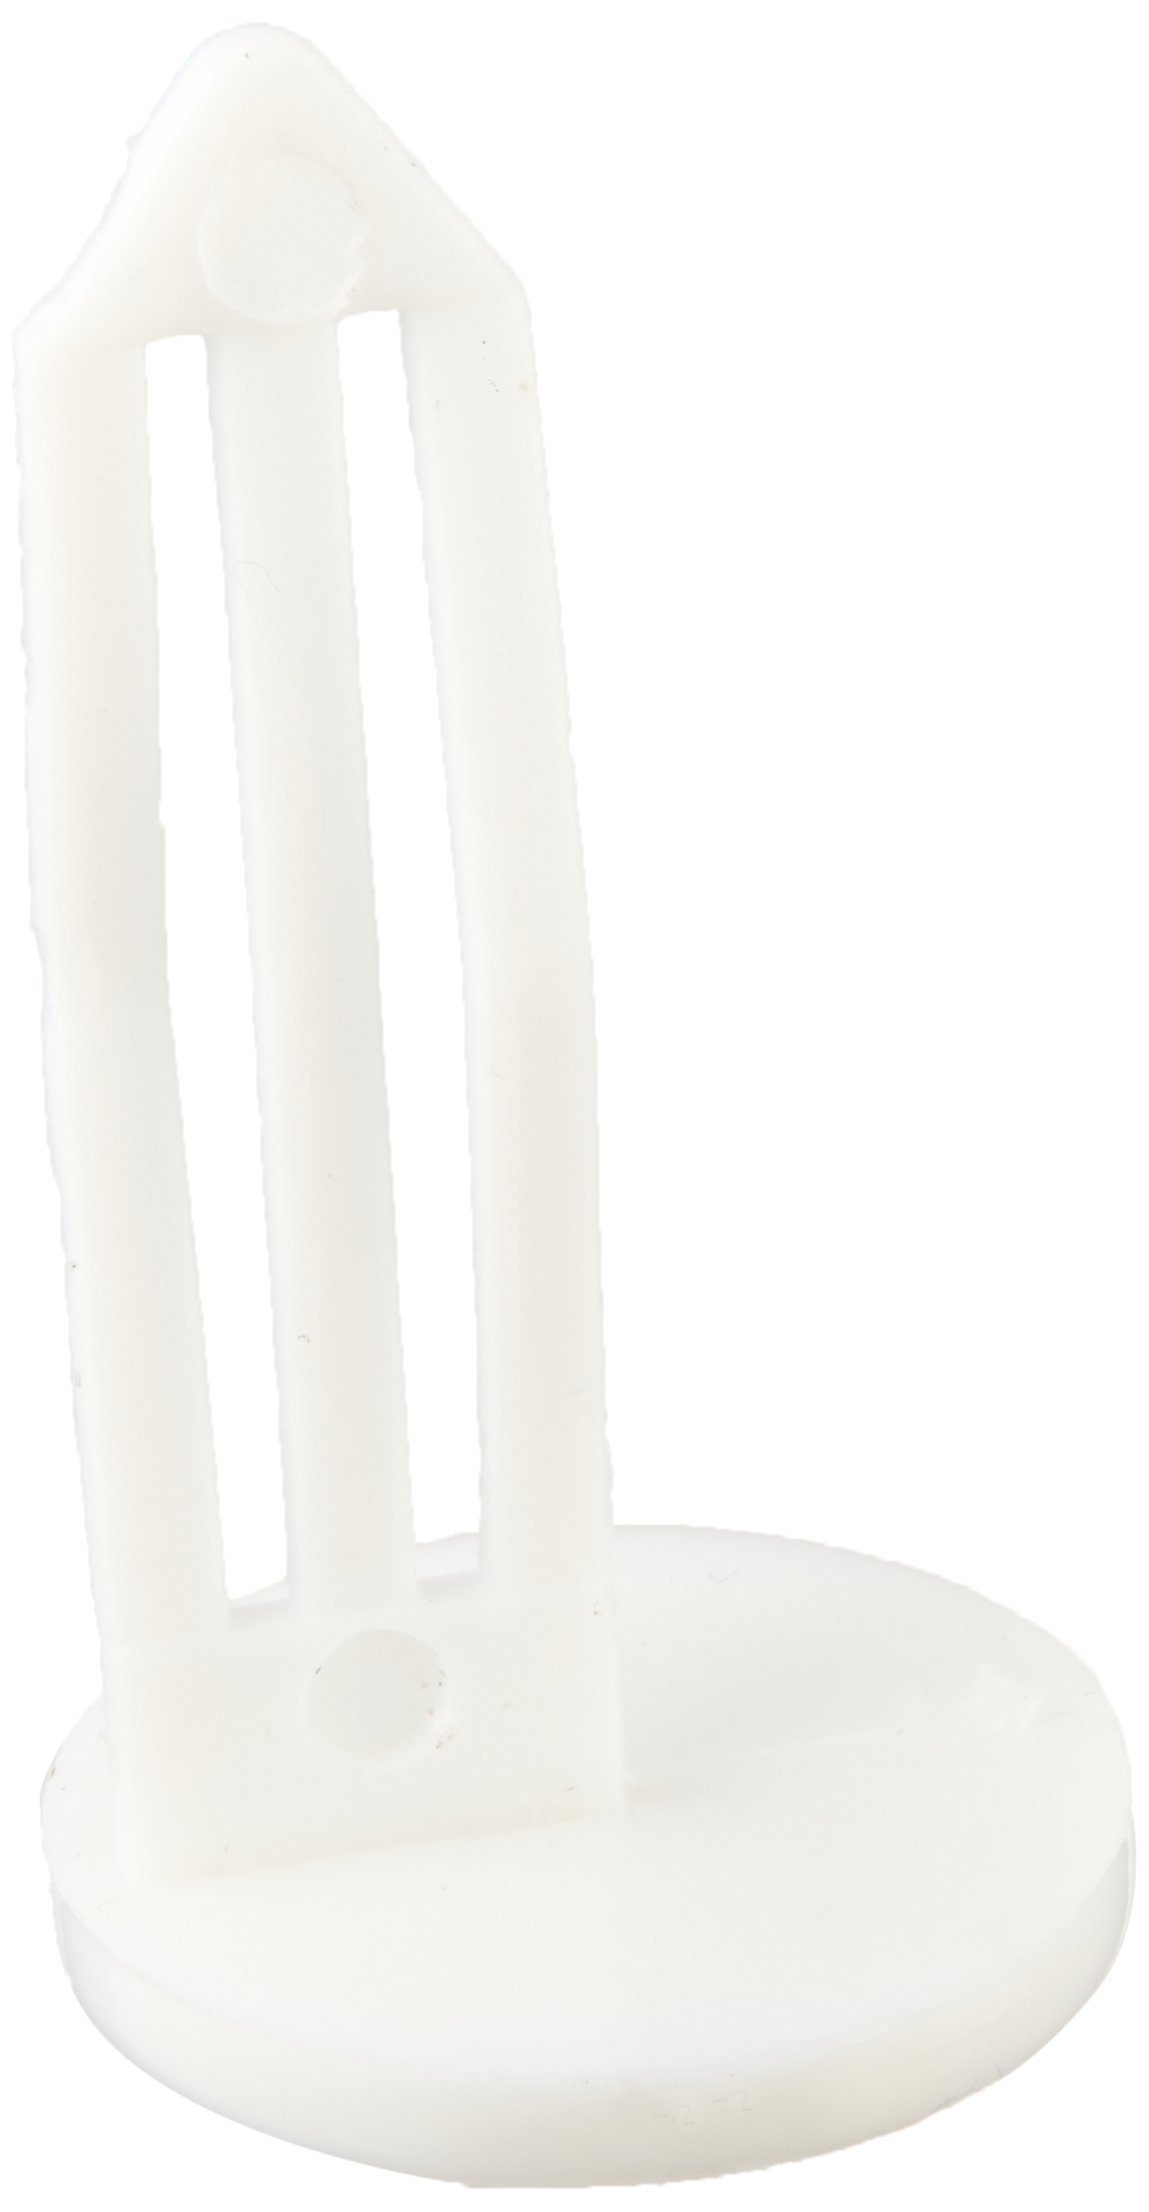 MMF Industries MMF261401806 Nylon Vault Key-Hole Signals, Safety and Security, White